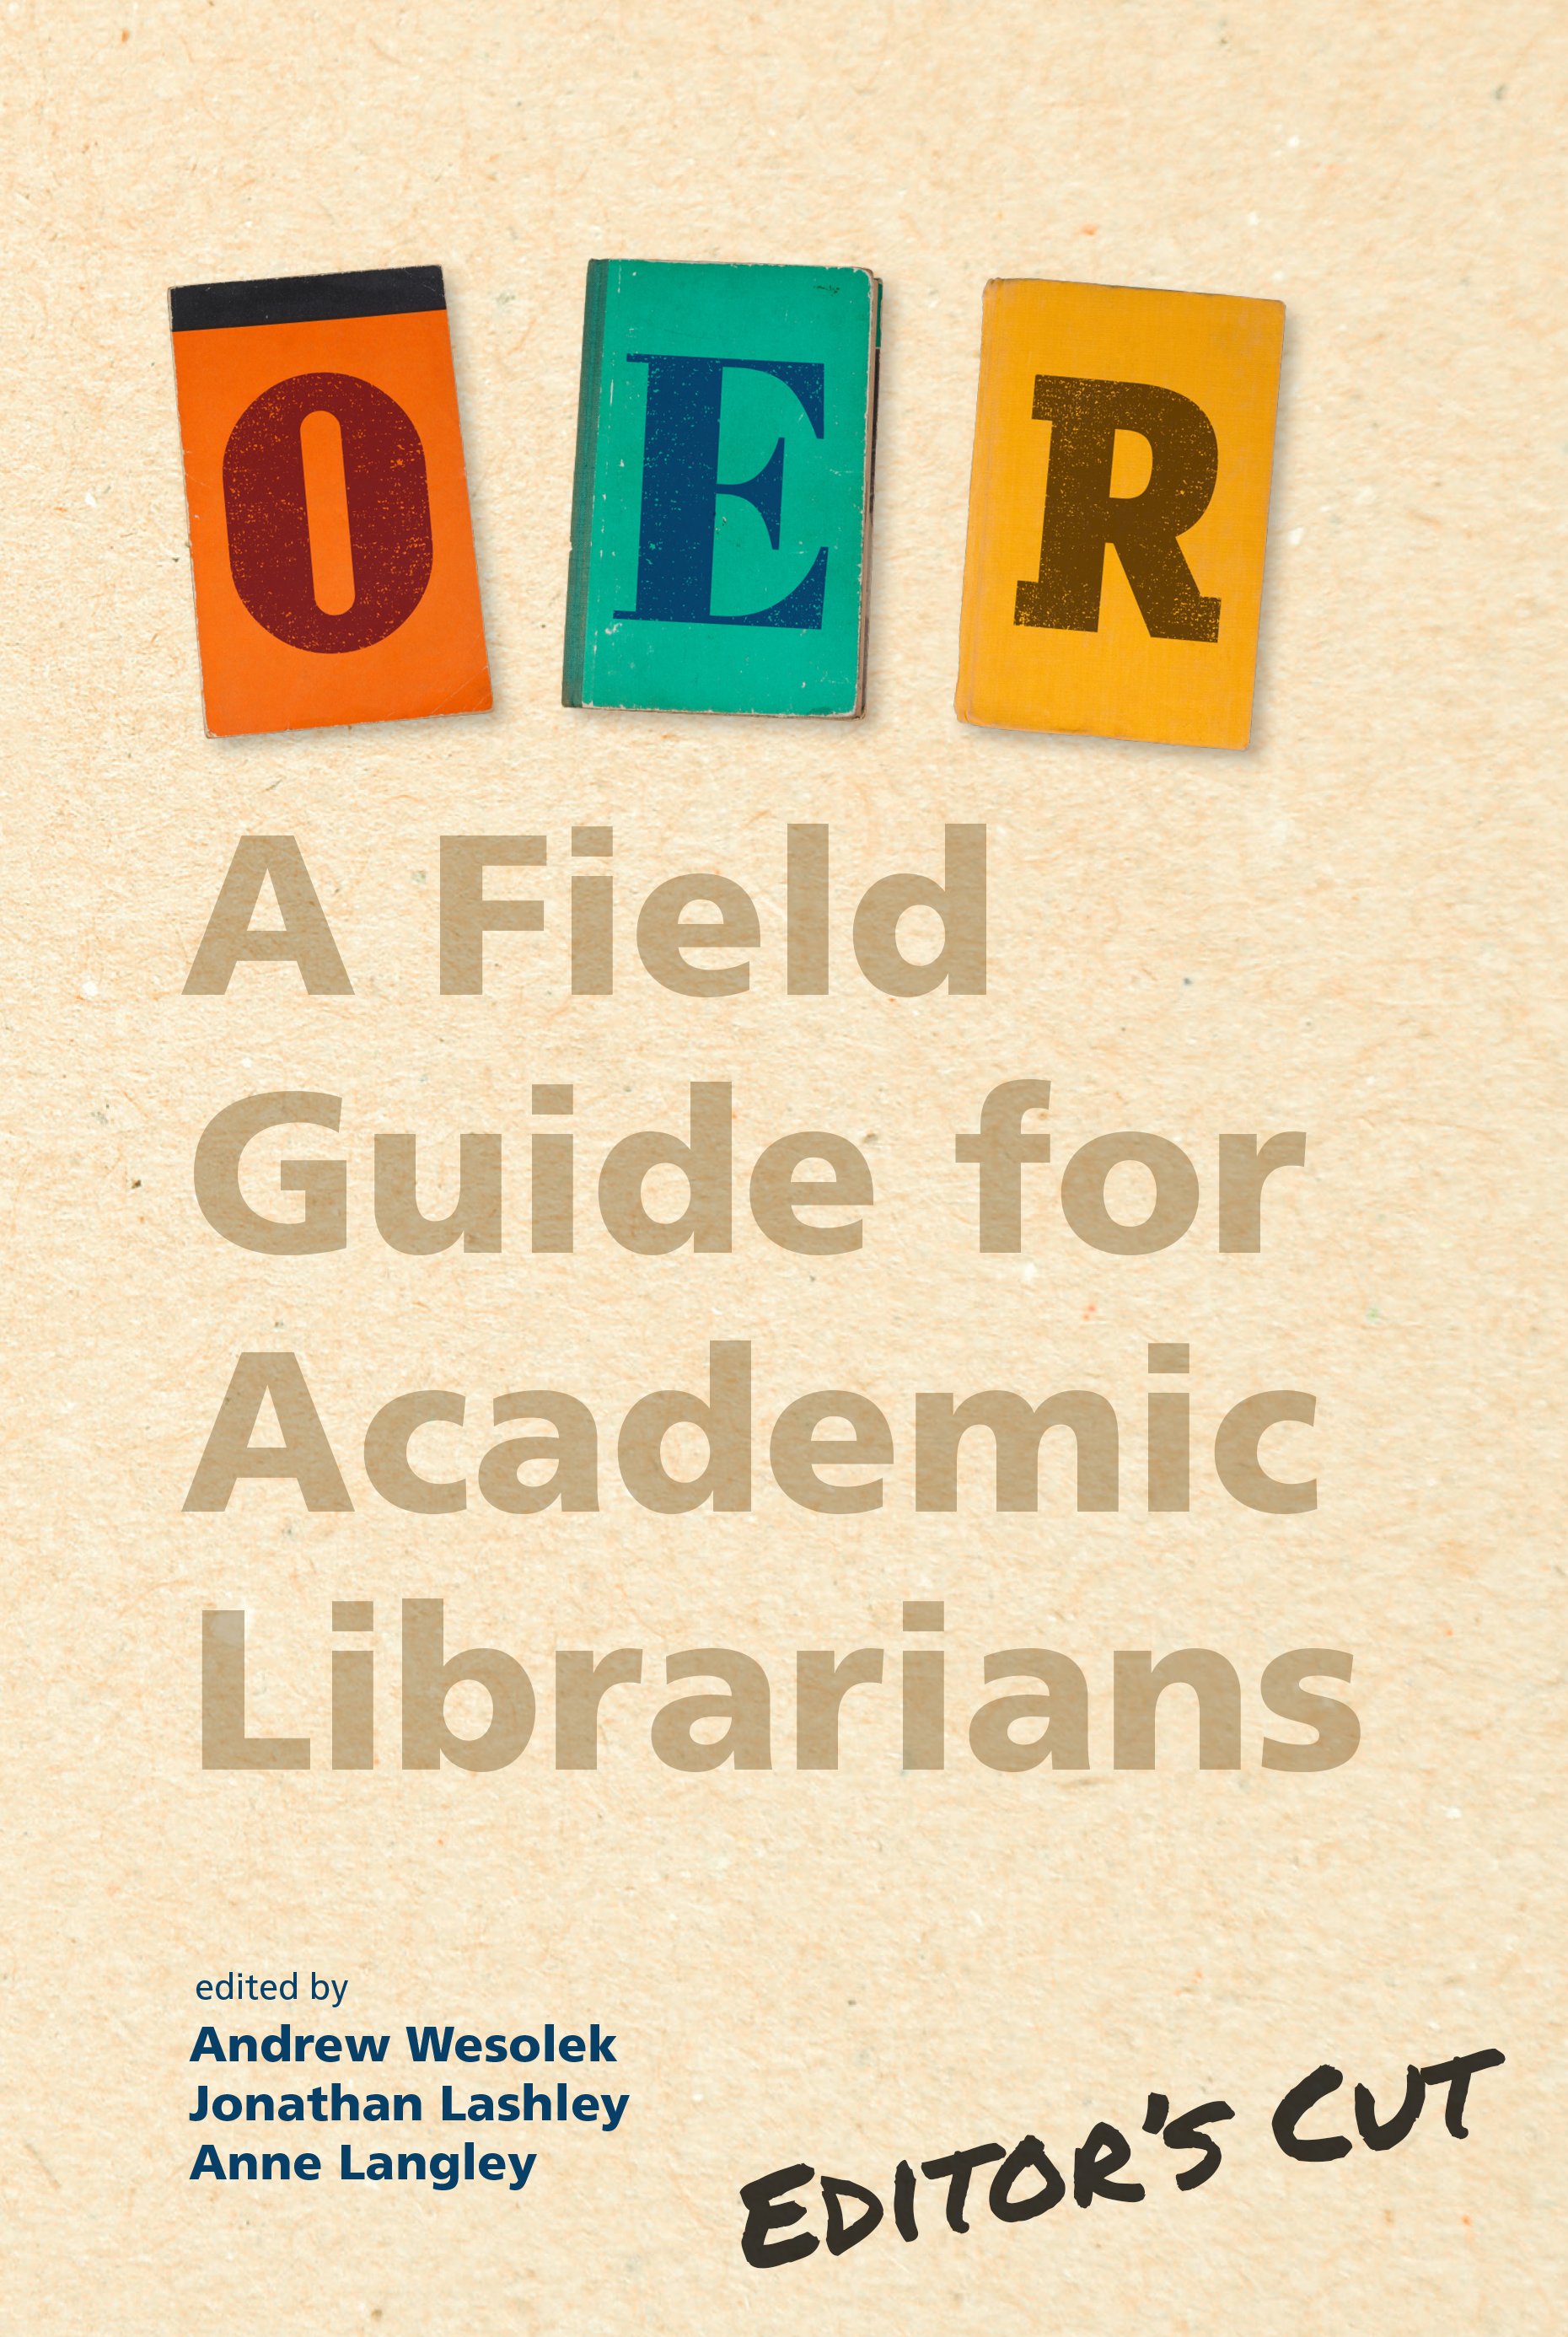 Cover image for OER: A Field Guide for Academic Librarians | Editor's Cut